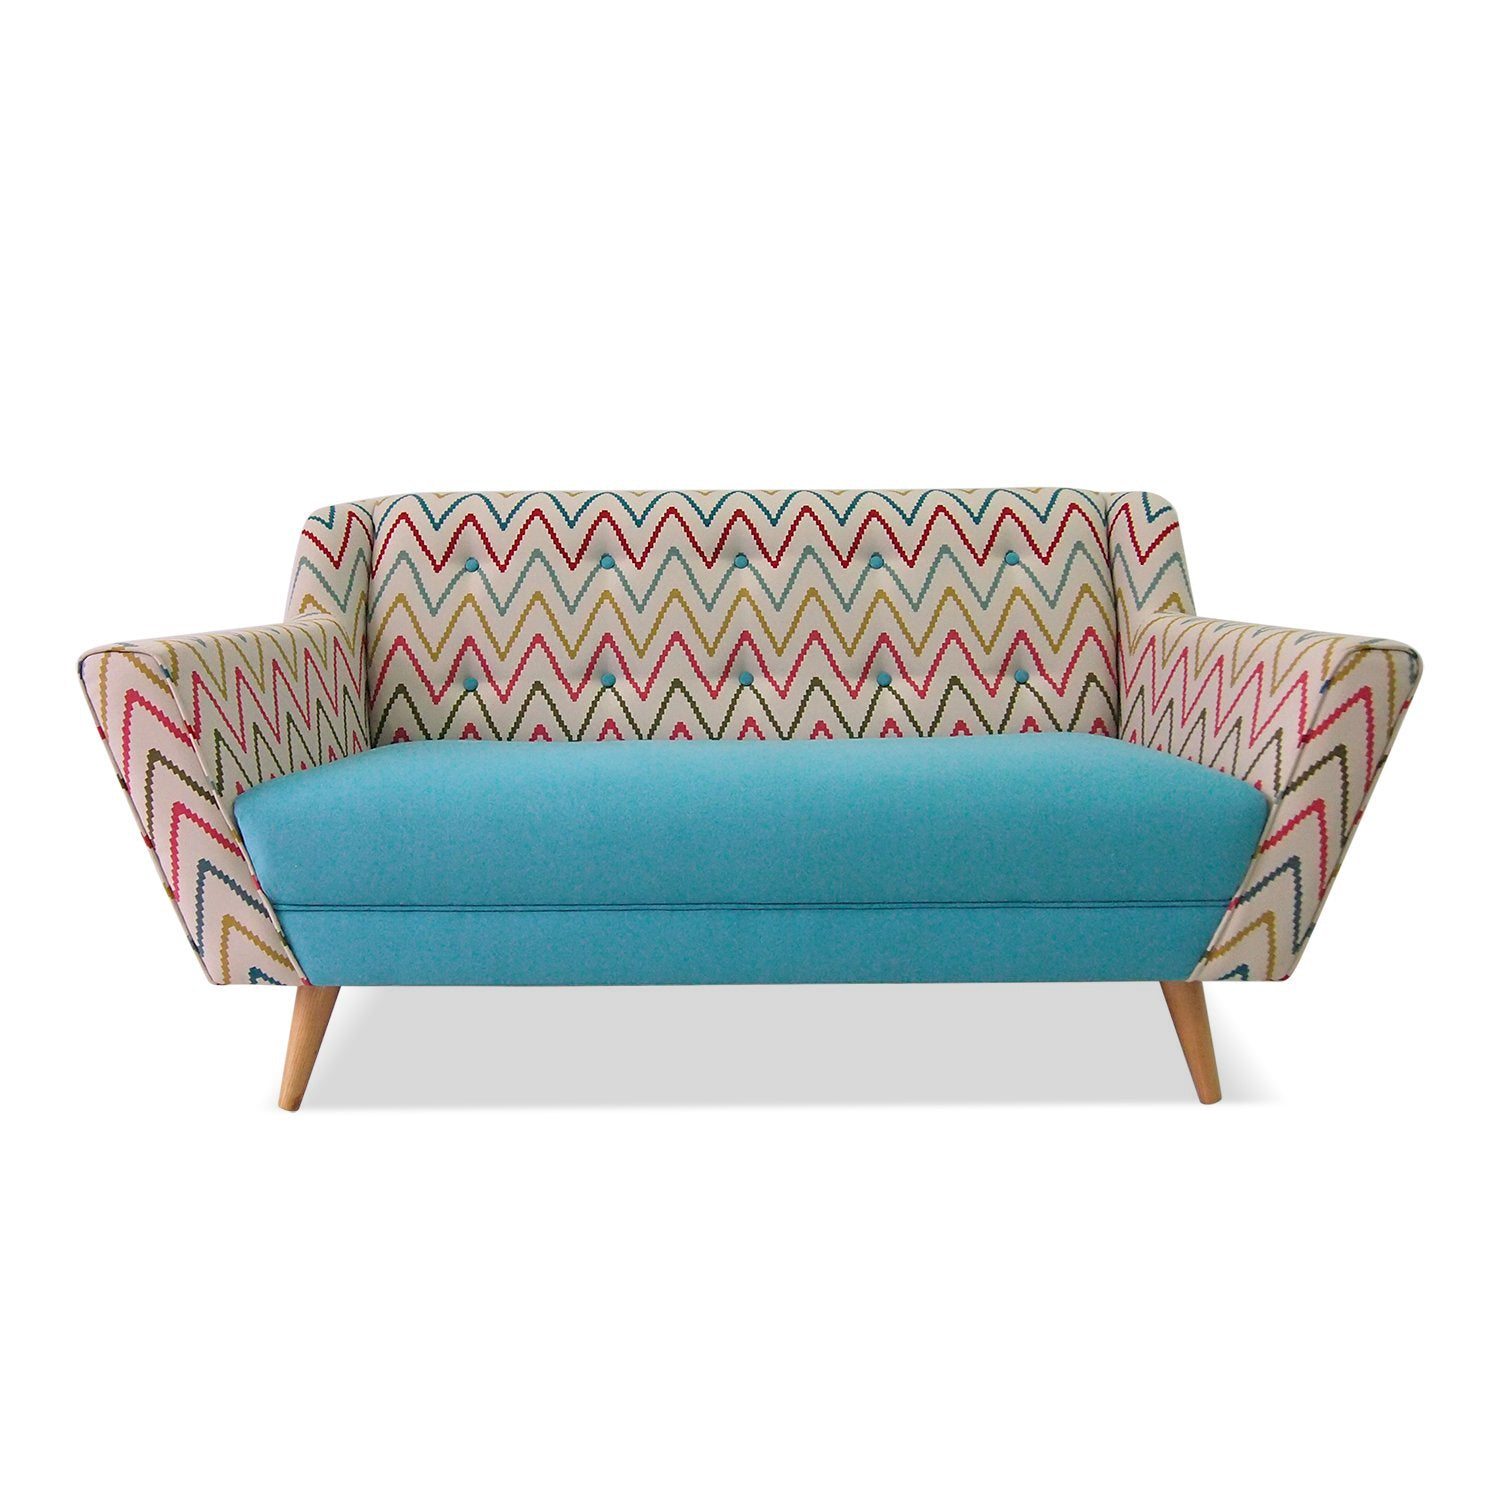 Hester Chevron sofa